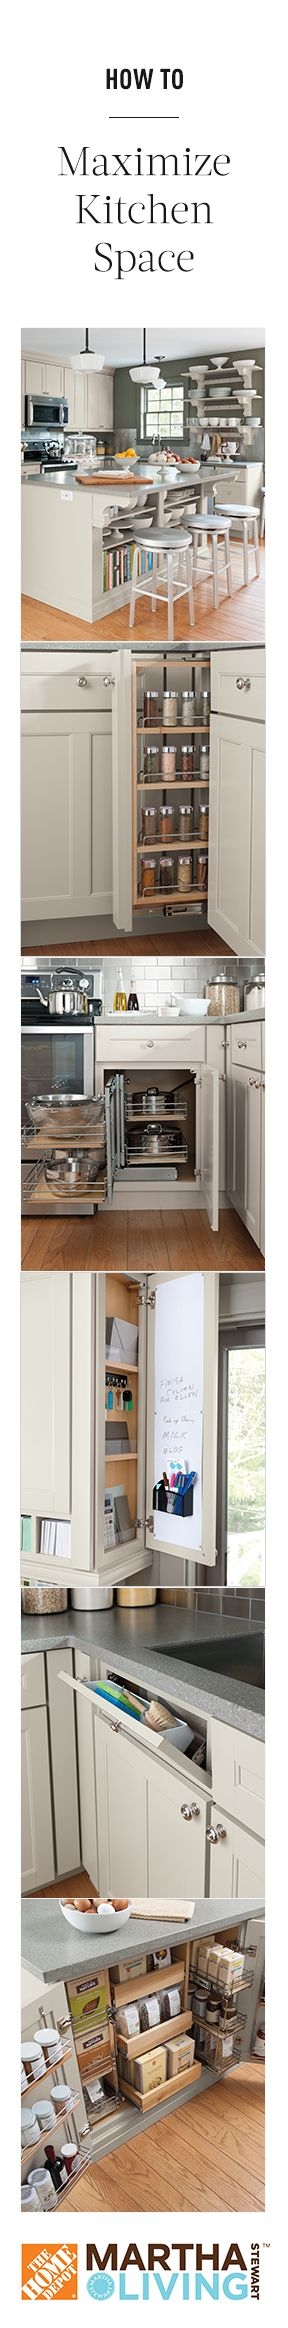 How to maximize kitchen space organization and storage Maximize kitchen storage